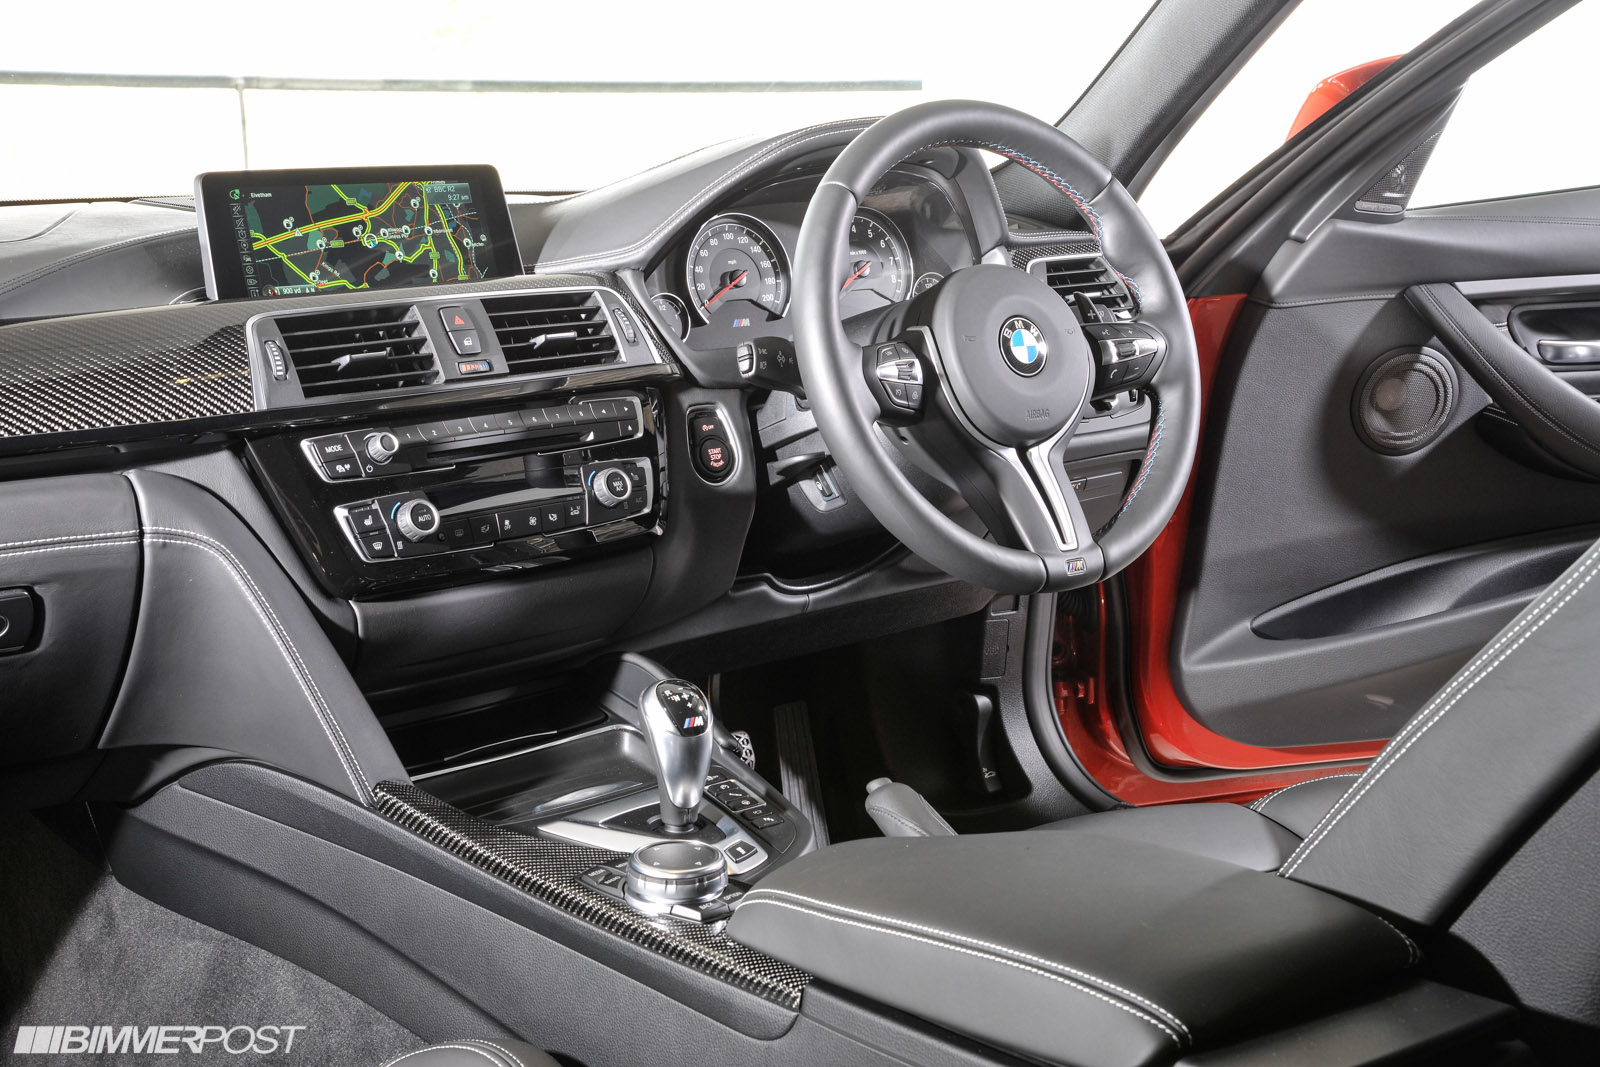 Official Bmw M3 And M4 Competition Package Details Pricing And Photos Bmw M3 And Bmw M4 Forum